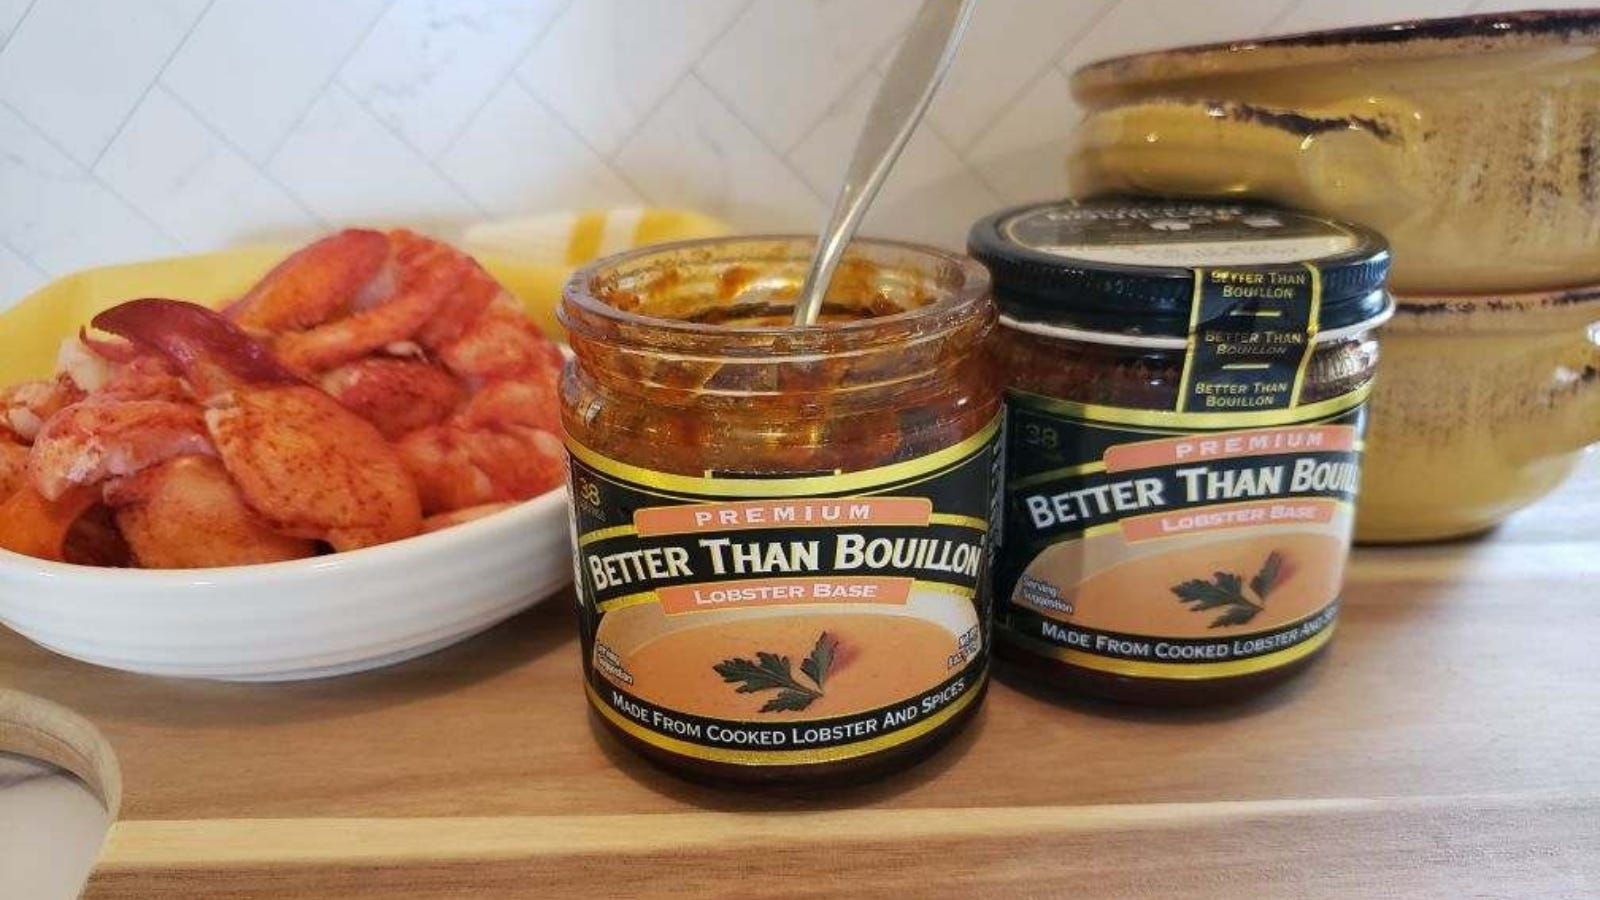 'Two jars of lobster base by Better than Bouillon with two crocks and a small bowl of lobster in teh background.